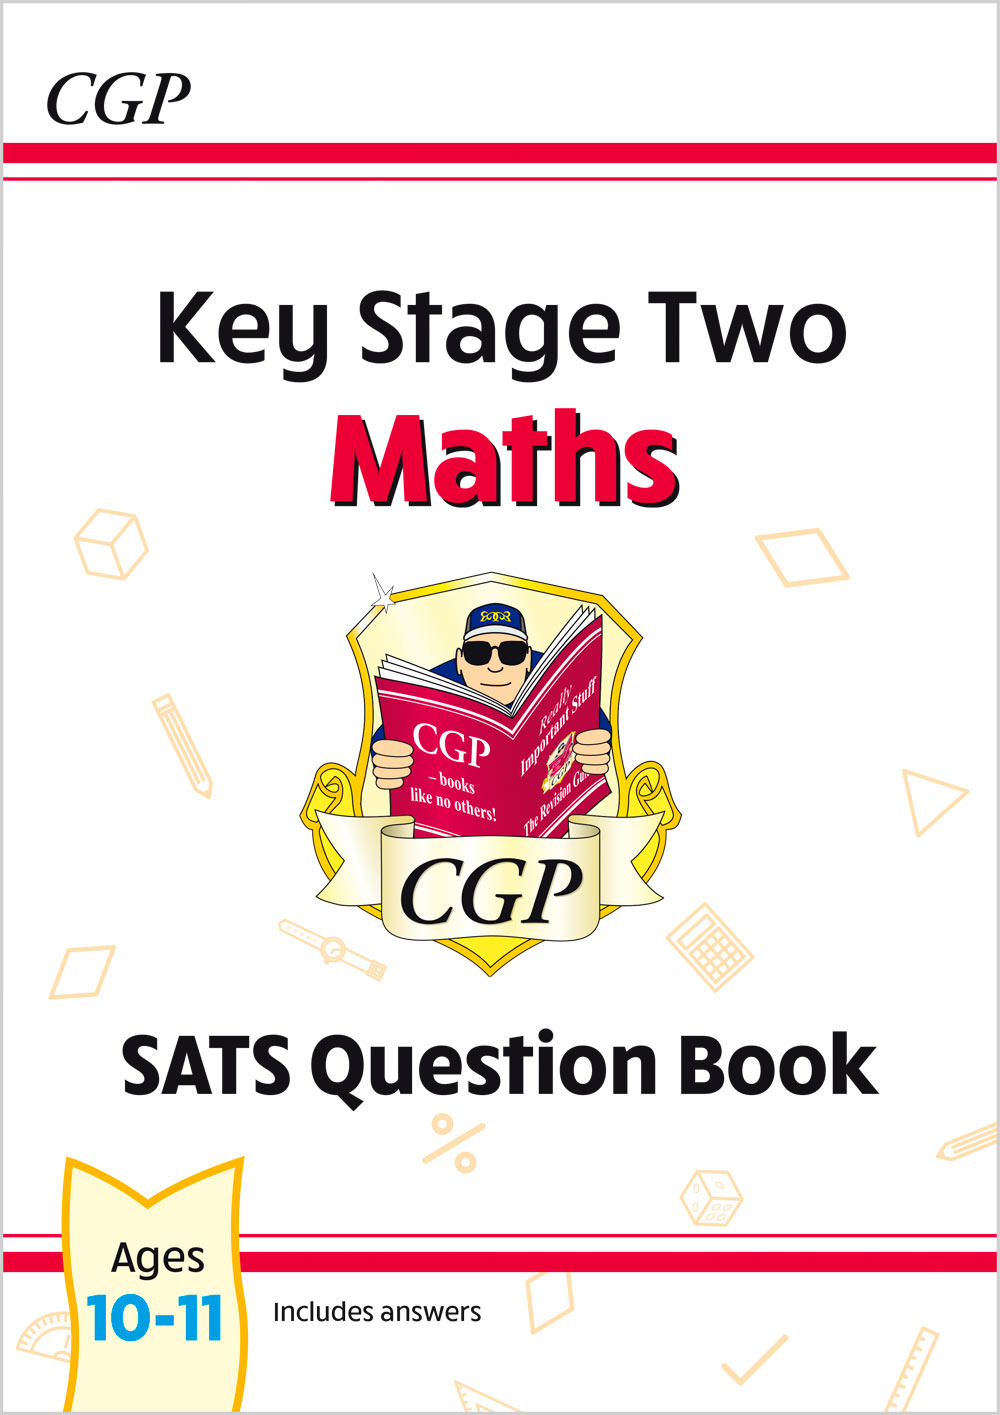 MLFW23 - New KS2 Maths SATS Question Book - Ages 10-11 (for the 2020 tests)